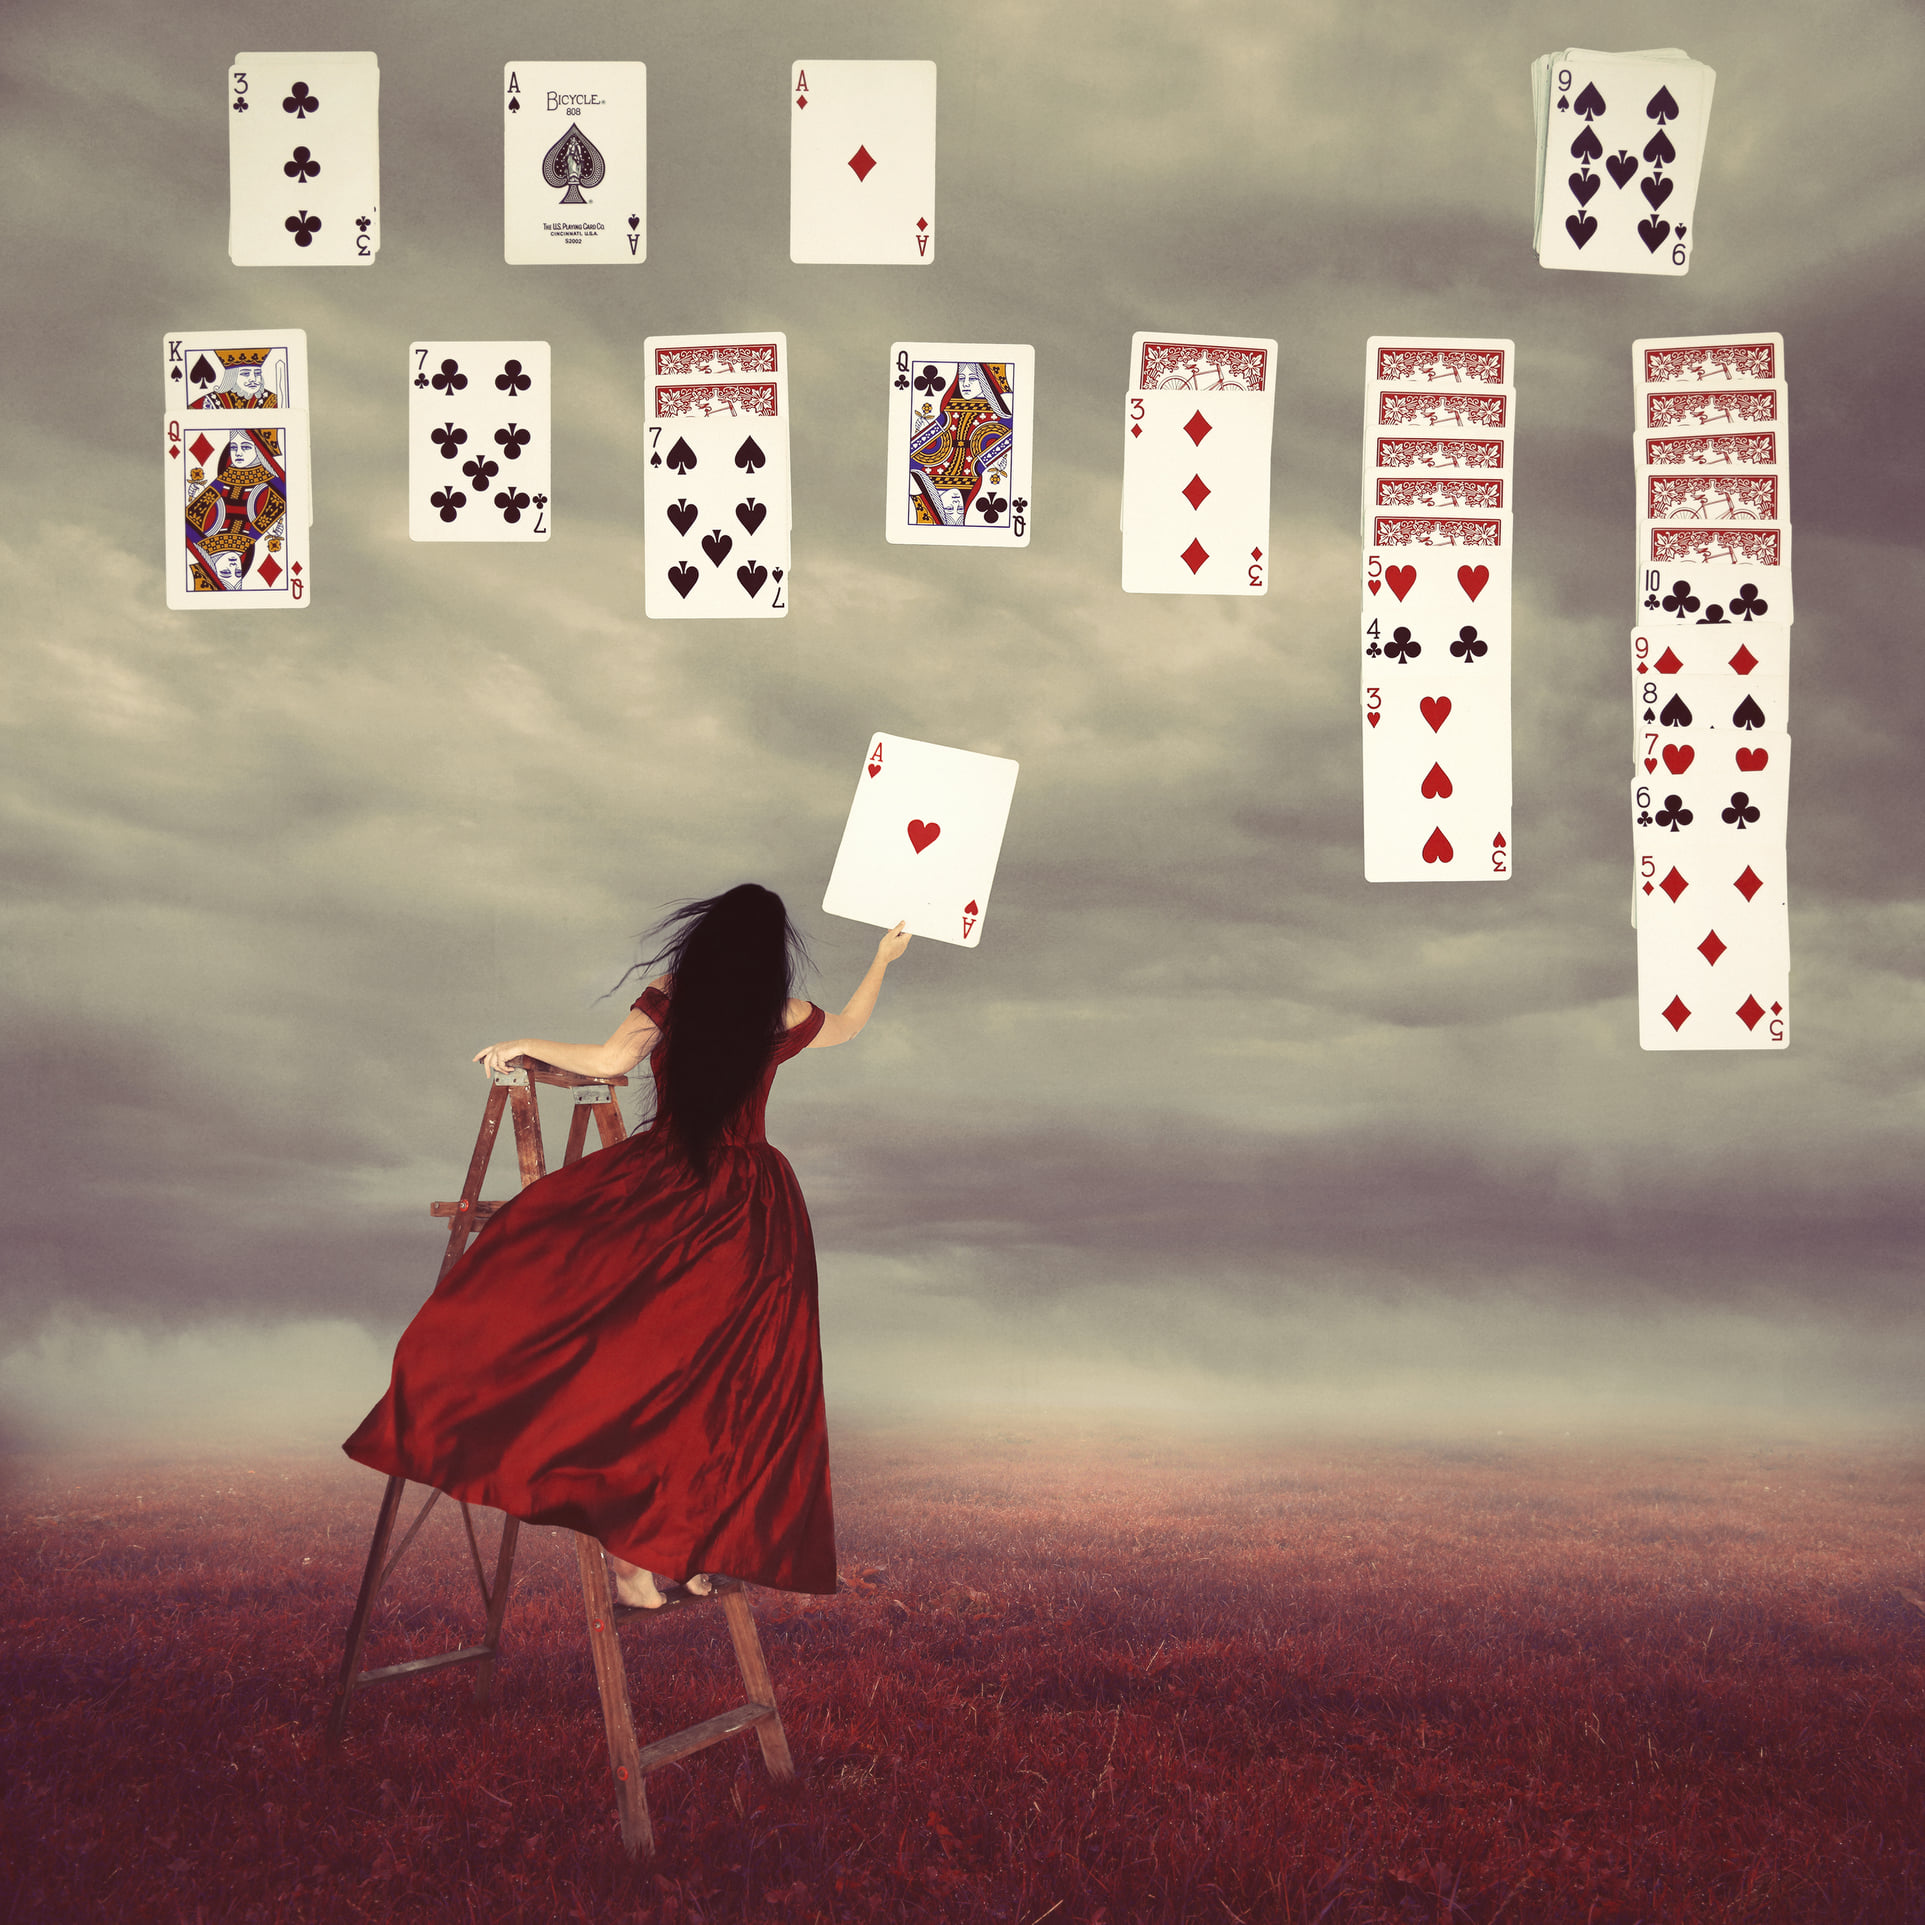 Margherita Introna- The game of Solitaire